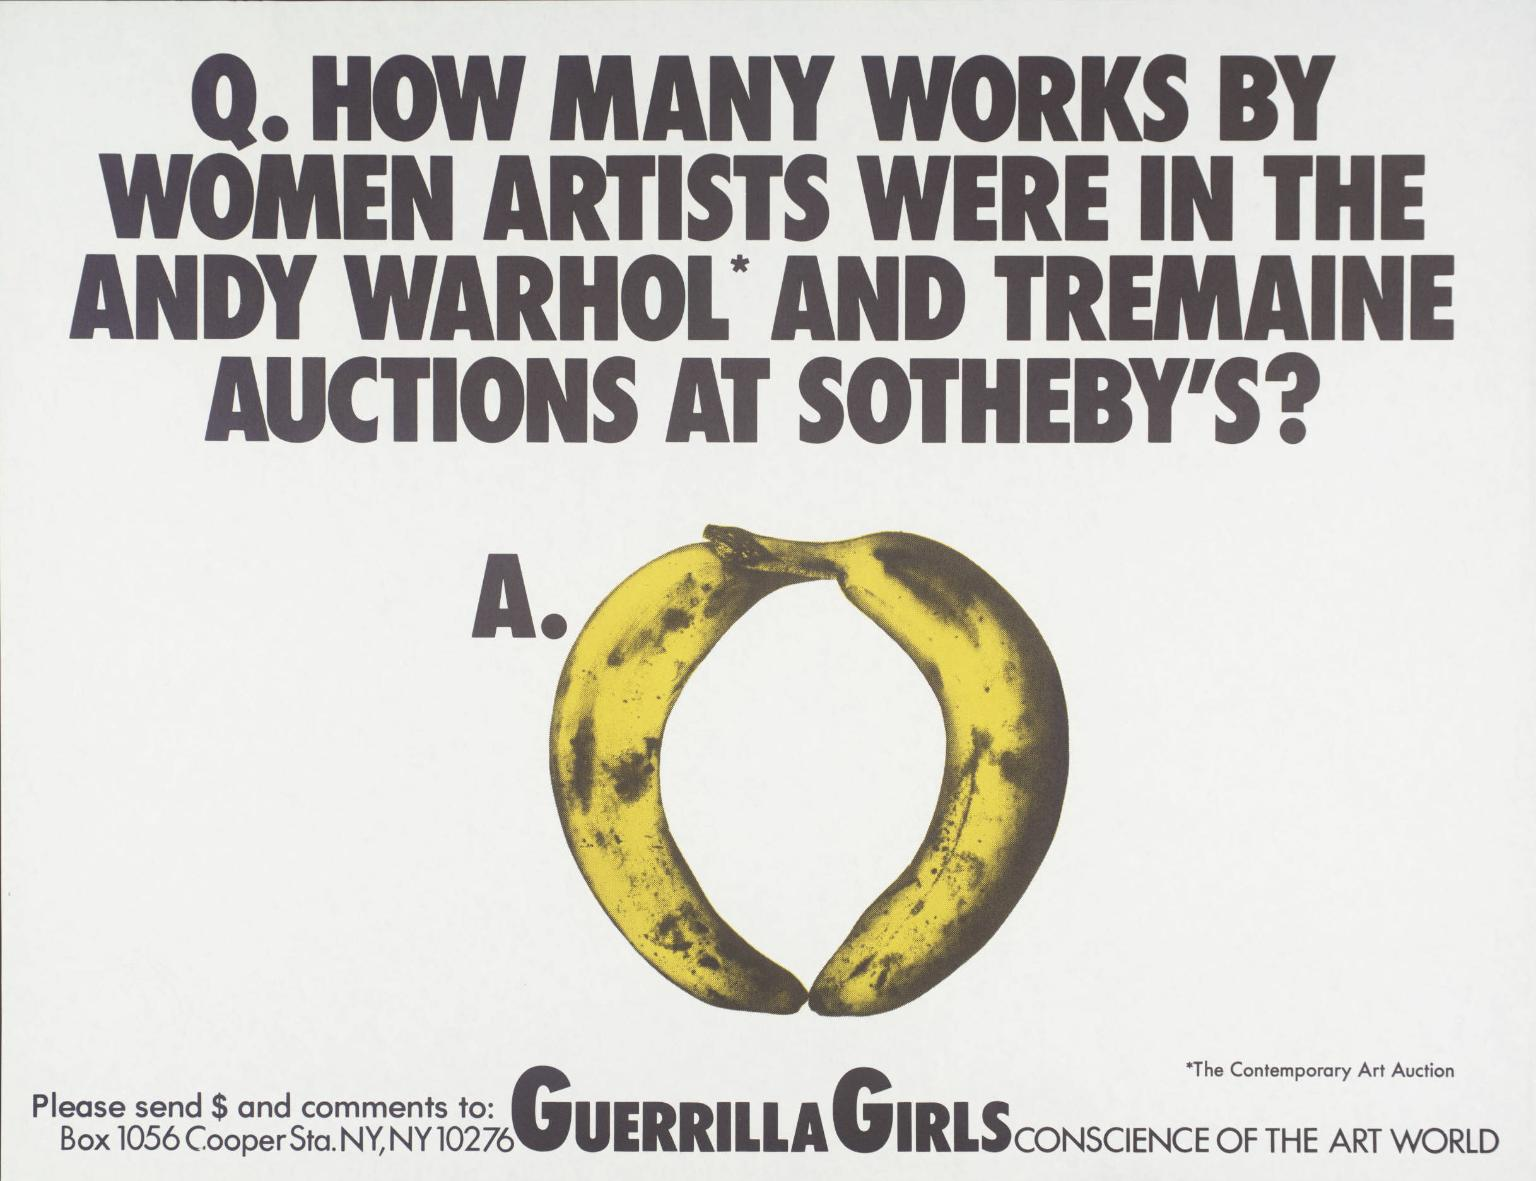 Women Artists In The Andy Warhol And Tremaine Auctions At Sotheby's,  1989 by Guerrilla Girls.